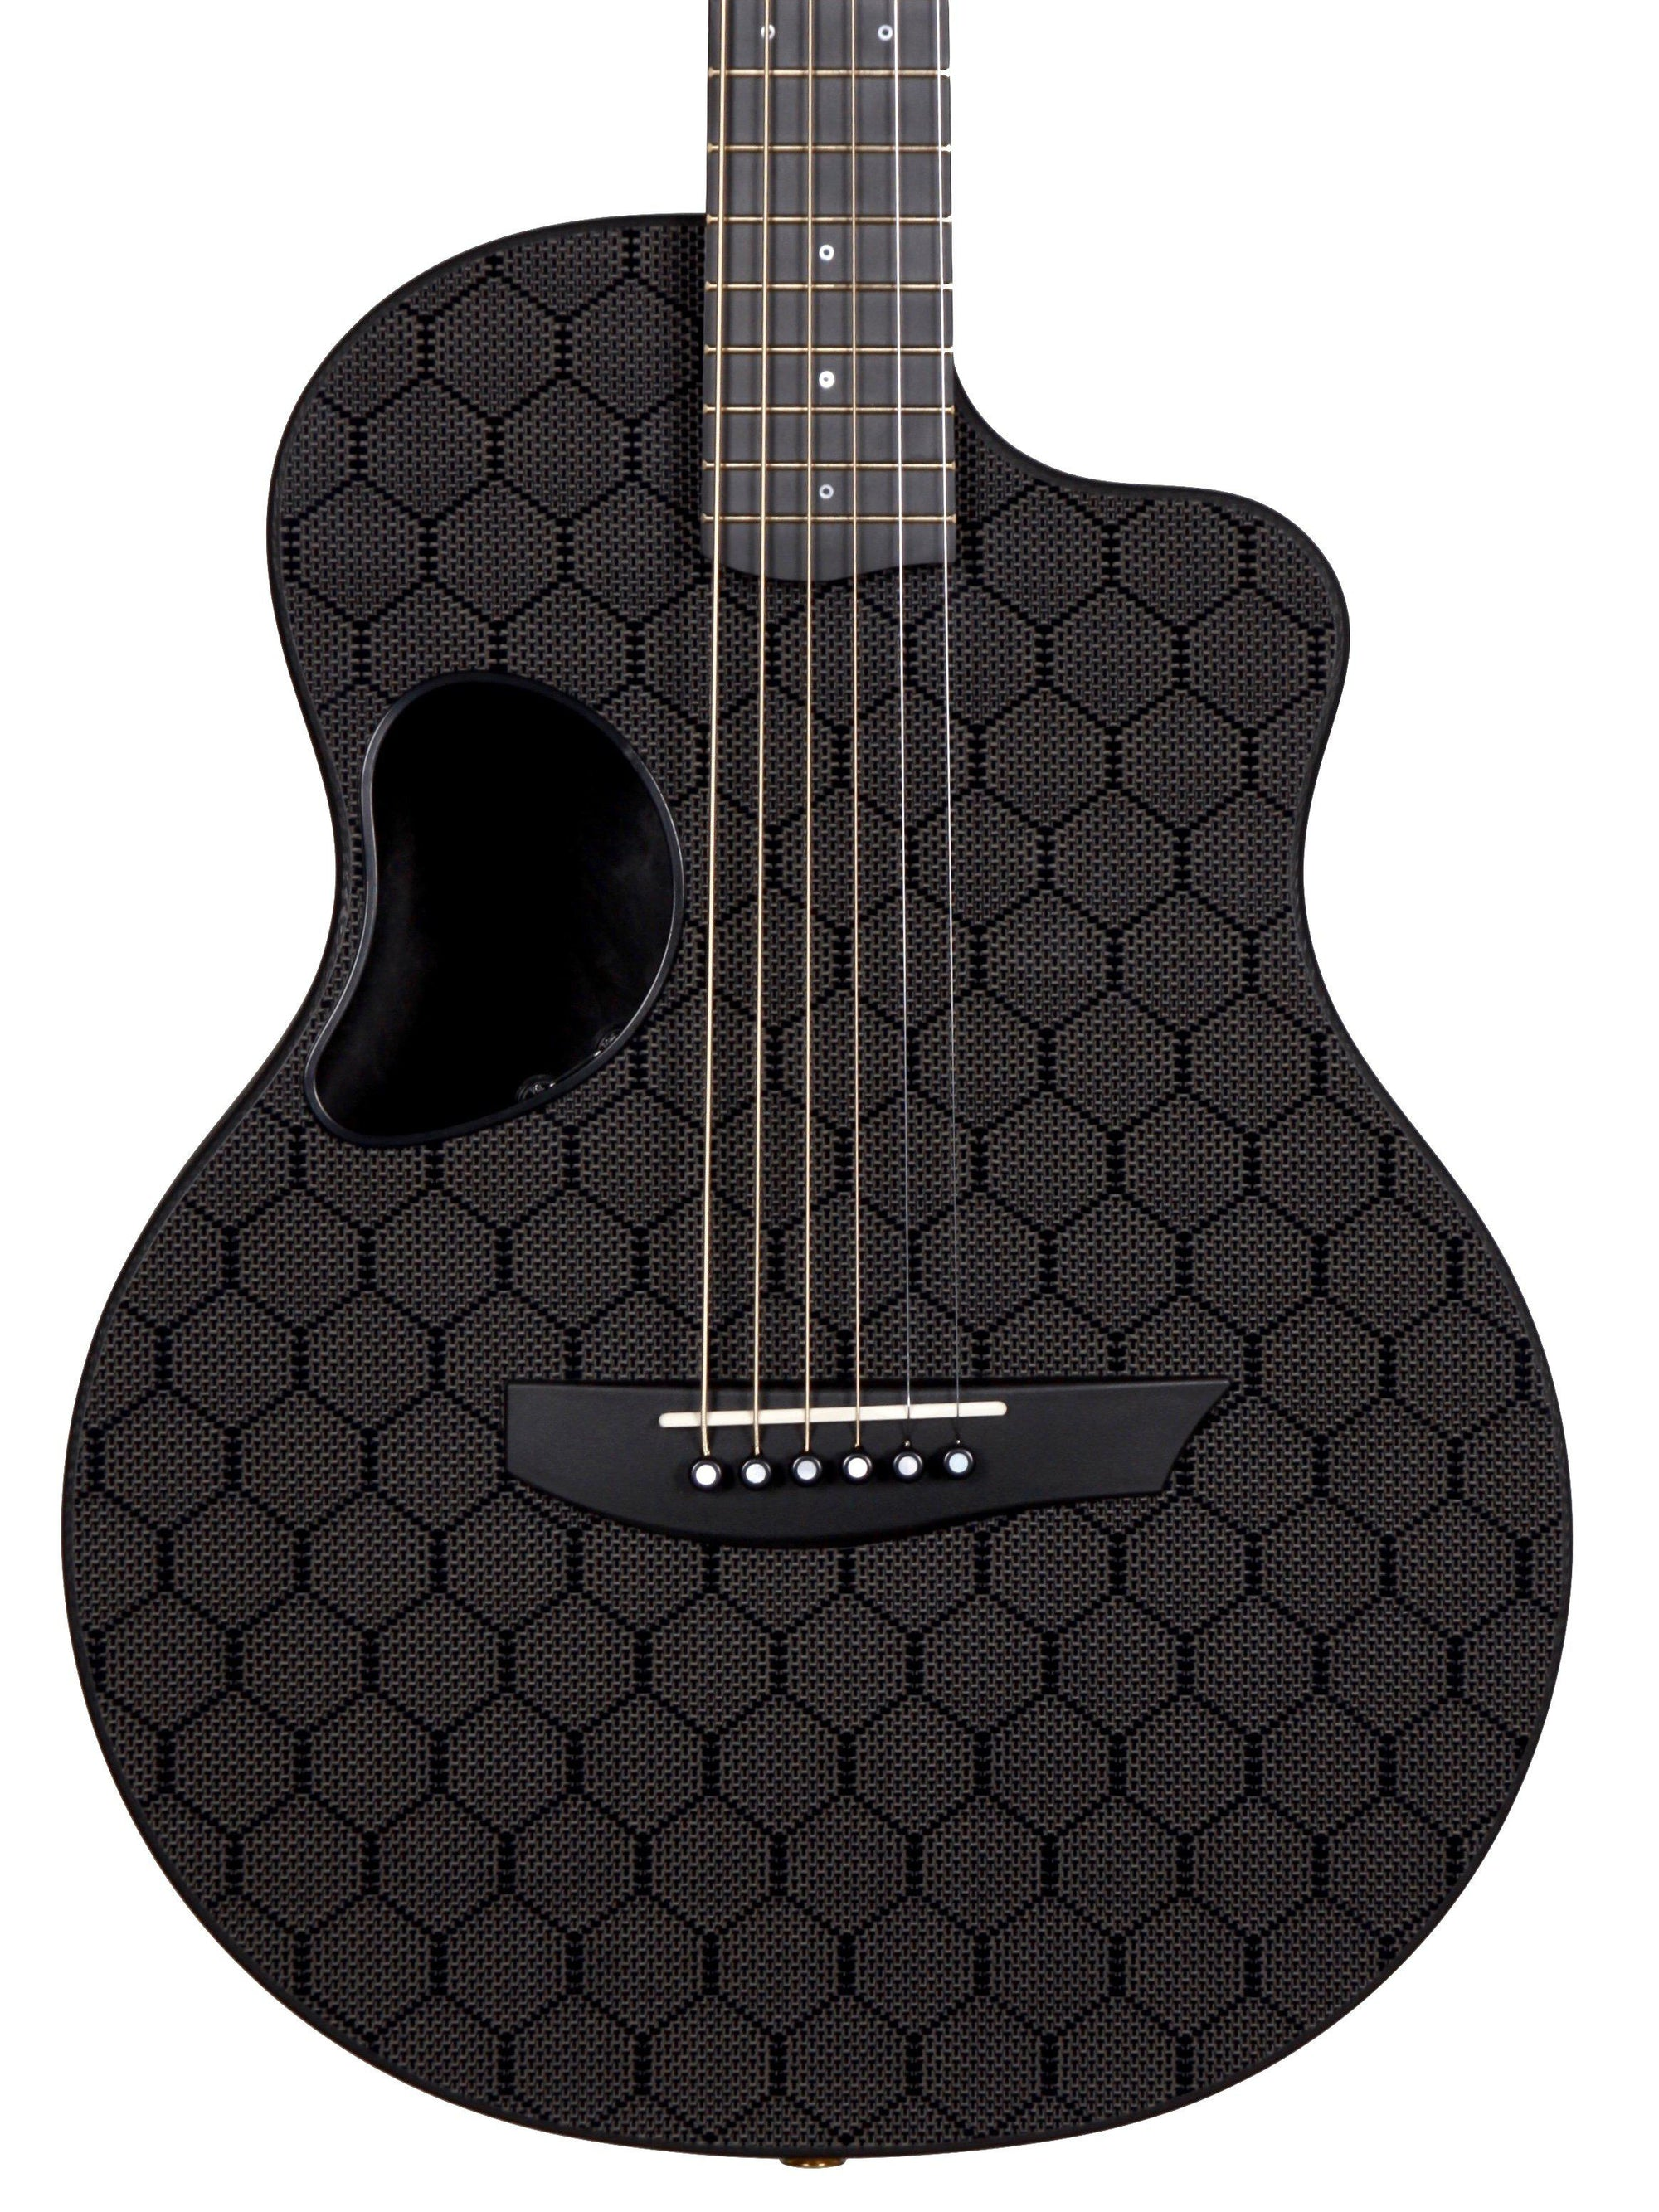 McPherson Carbon Fiber Touring Model Honeycomb Finish and Gold Hardware #GCTH917B - McPherson Guitars - Heartbreaker Guitars